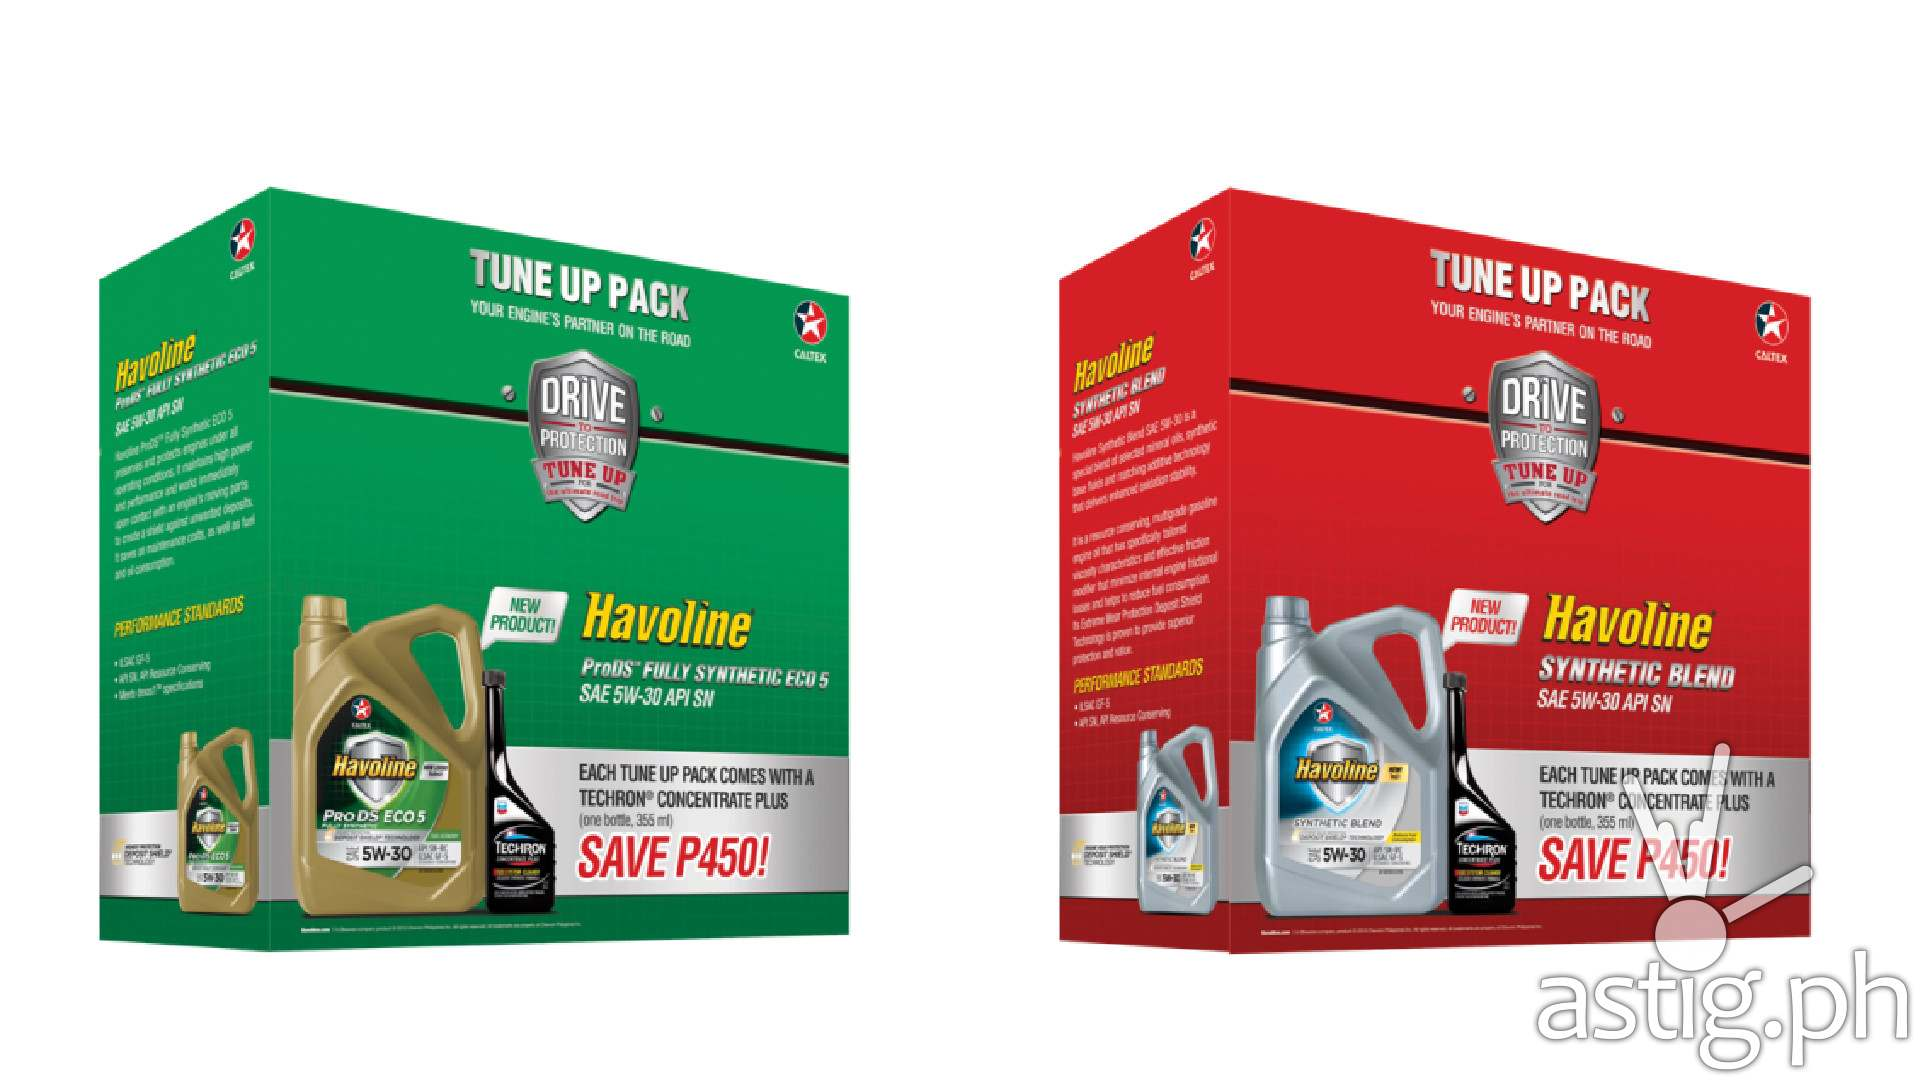 Havoline ProDS Fully Synthetic ECO 5 SAE 5W-30 and Havoline Synthetic Blend SAE 5W-30